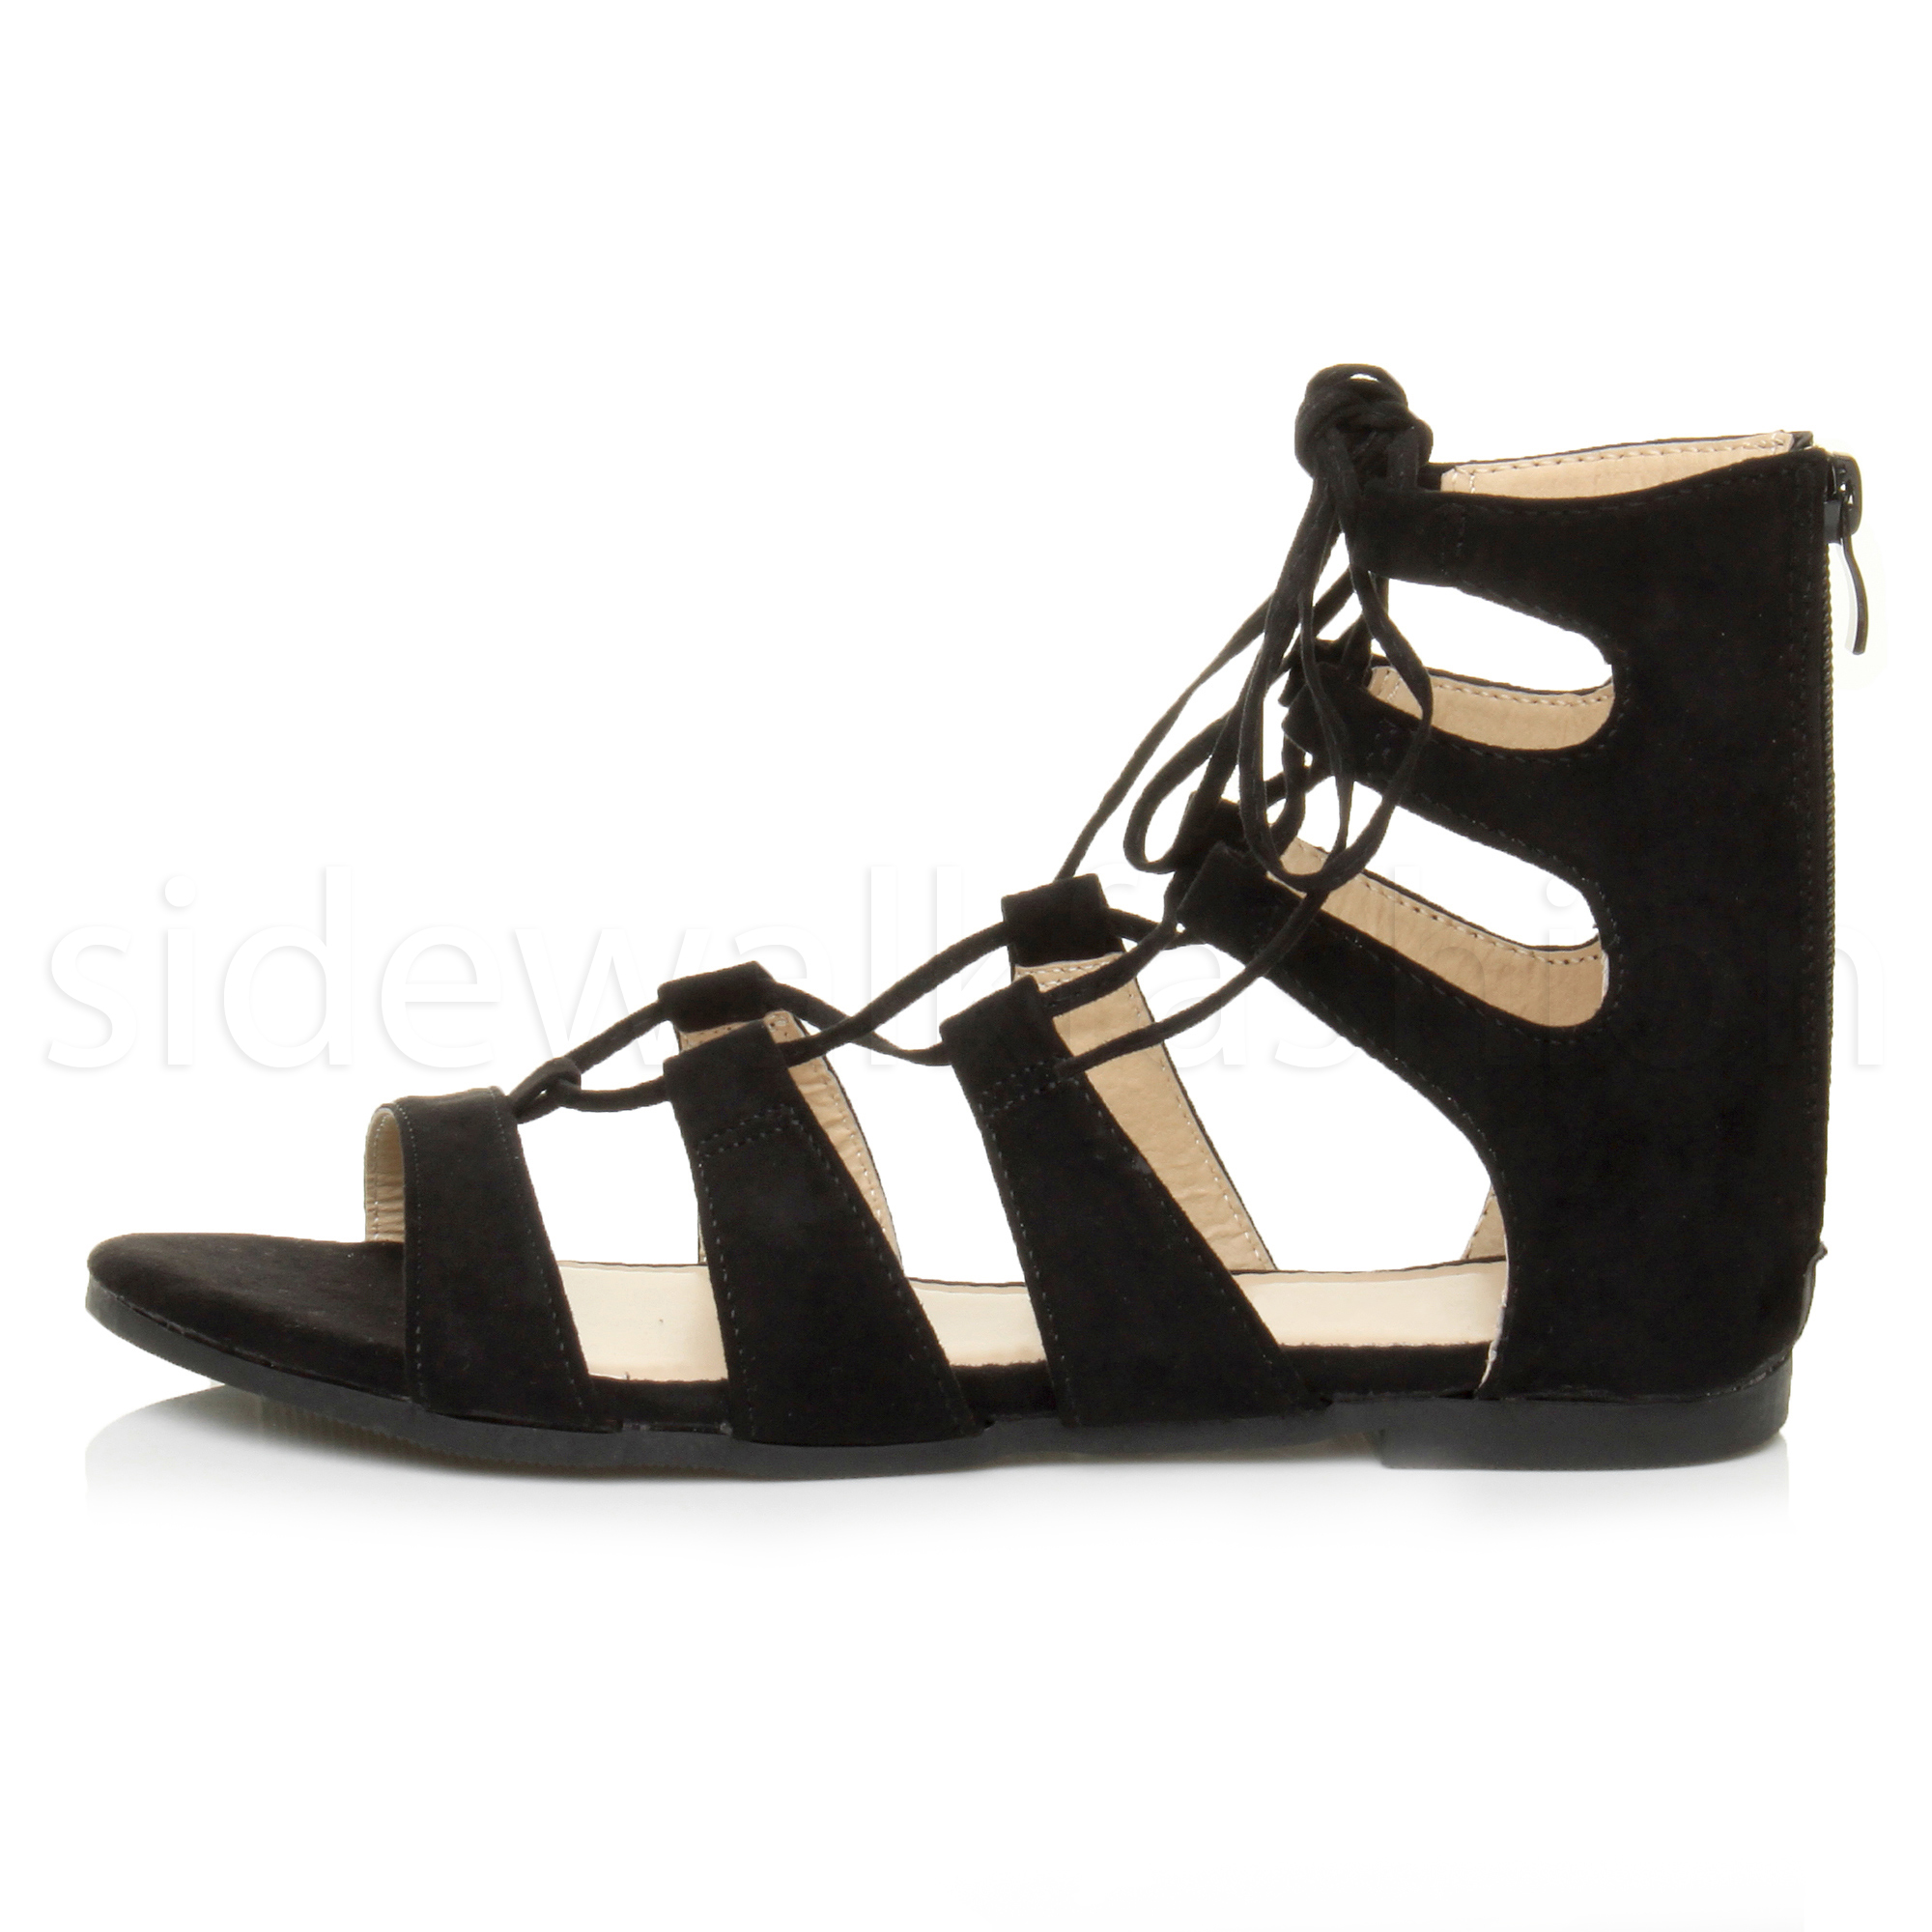 Shop cute heels and sexy shoes for women at cheap prices online, find new cute sexy shoes for women at specialisedsteels.tk and get free shipping orders over $ Buy Women's cute shoes cheap online for discount prices, find super cute shoes at specialisedsteels.tk high heels can make the perfect sexy club shoes.